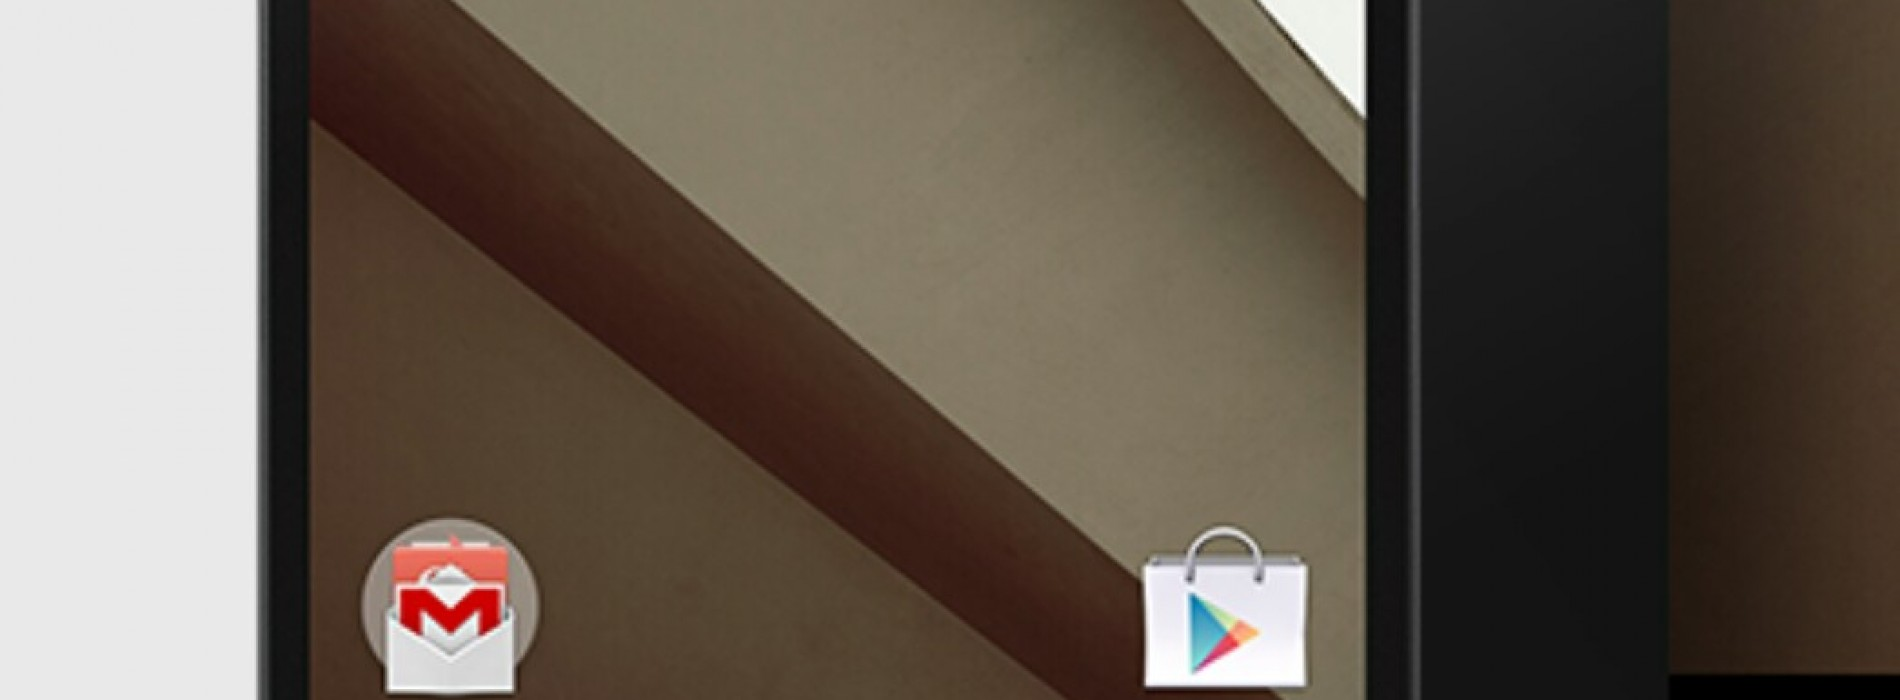 Get This Look: Android L Wallpaper